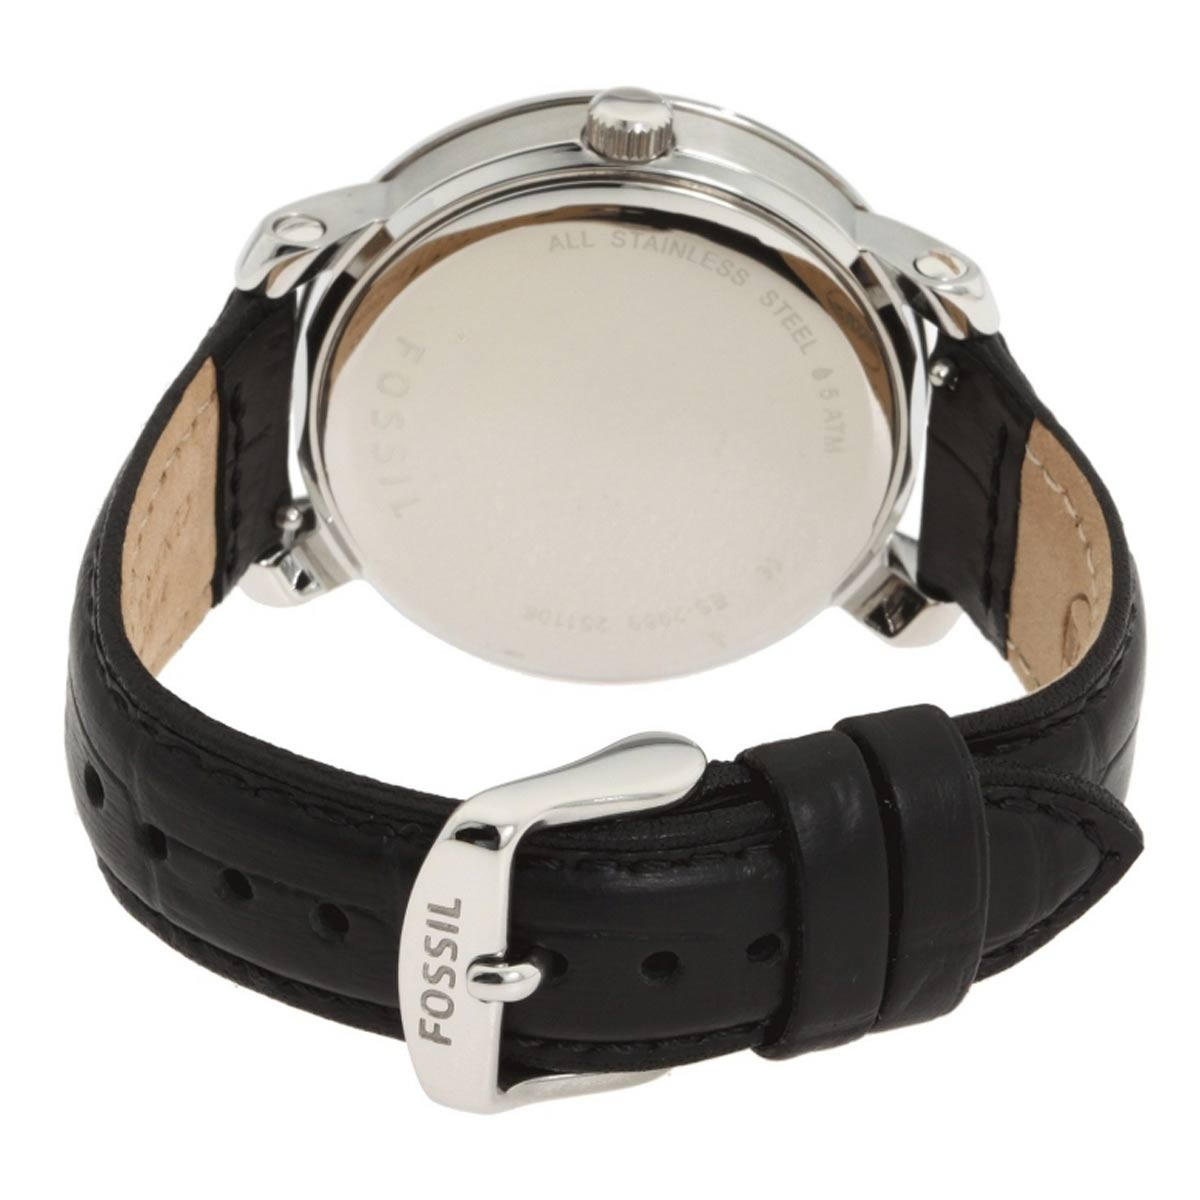 Fossil ES2969 Women's Boyfriend Crystal Accented Bezel White MOP Dial Black Leather Strap Watch